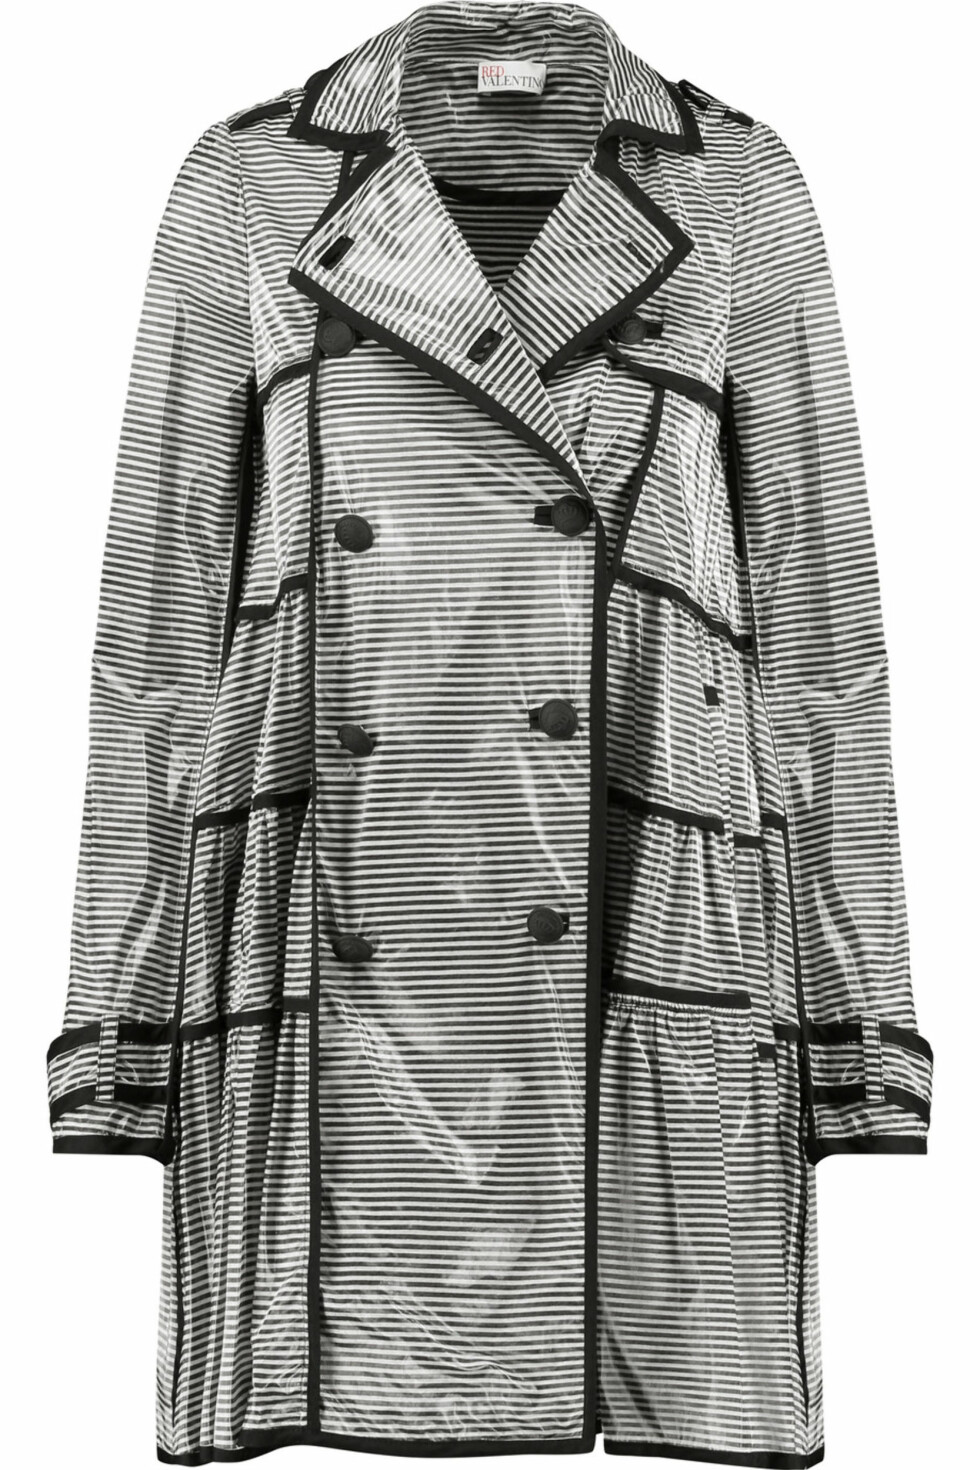 Regnjakke fra RedValentino via The Outnet | kr 2260 | https://www.theoutnet.com/en-GB/Shop/Product/REDValentino/REDValentino-coated-striped-modal-blend-trench-coat/909349?cm_mmc=LinkshareUS-_-TnL5HPStwNw-_-Custom-_-LinkBuilder&siteID=TnL5HPStwNw-Bv8LcD2k9mcu3TIEgHYiXw&Skimlinks.com=Skimlinks.com